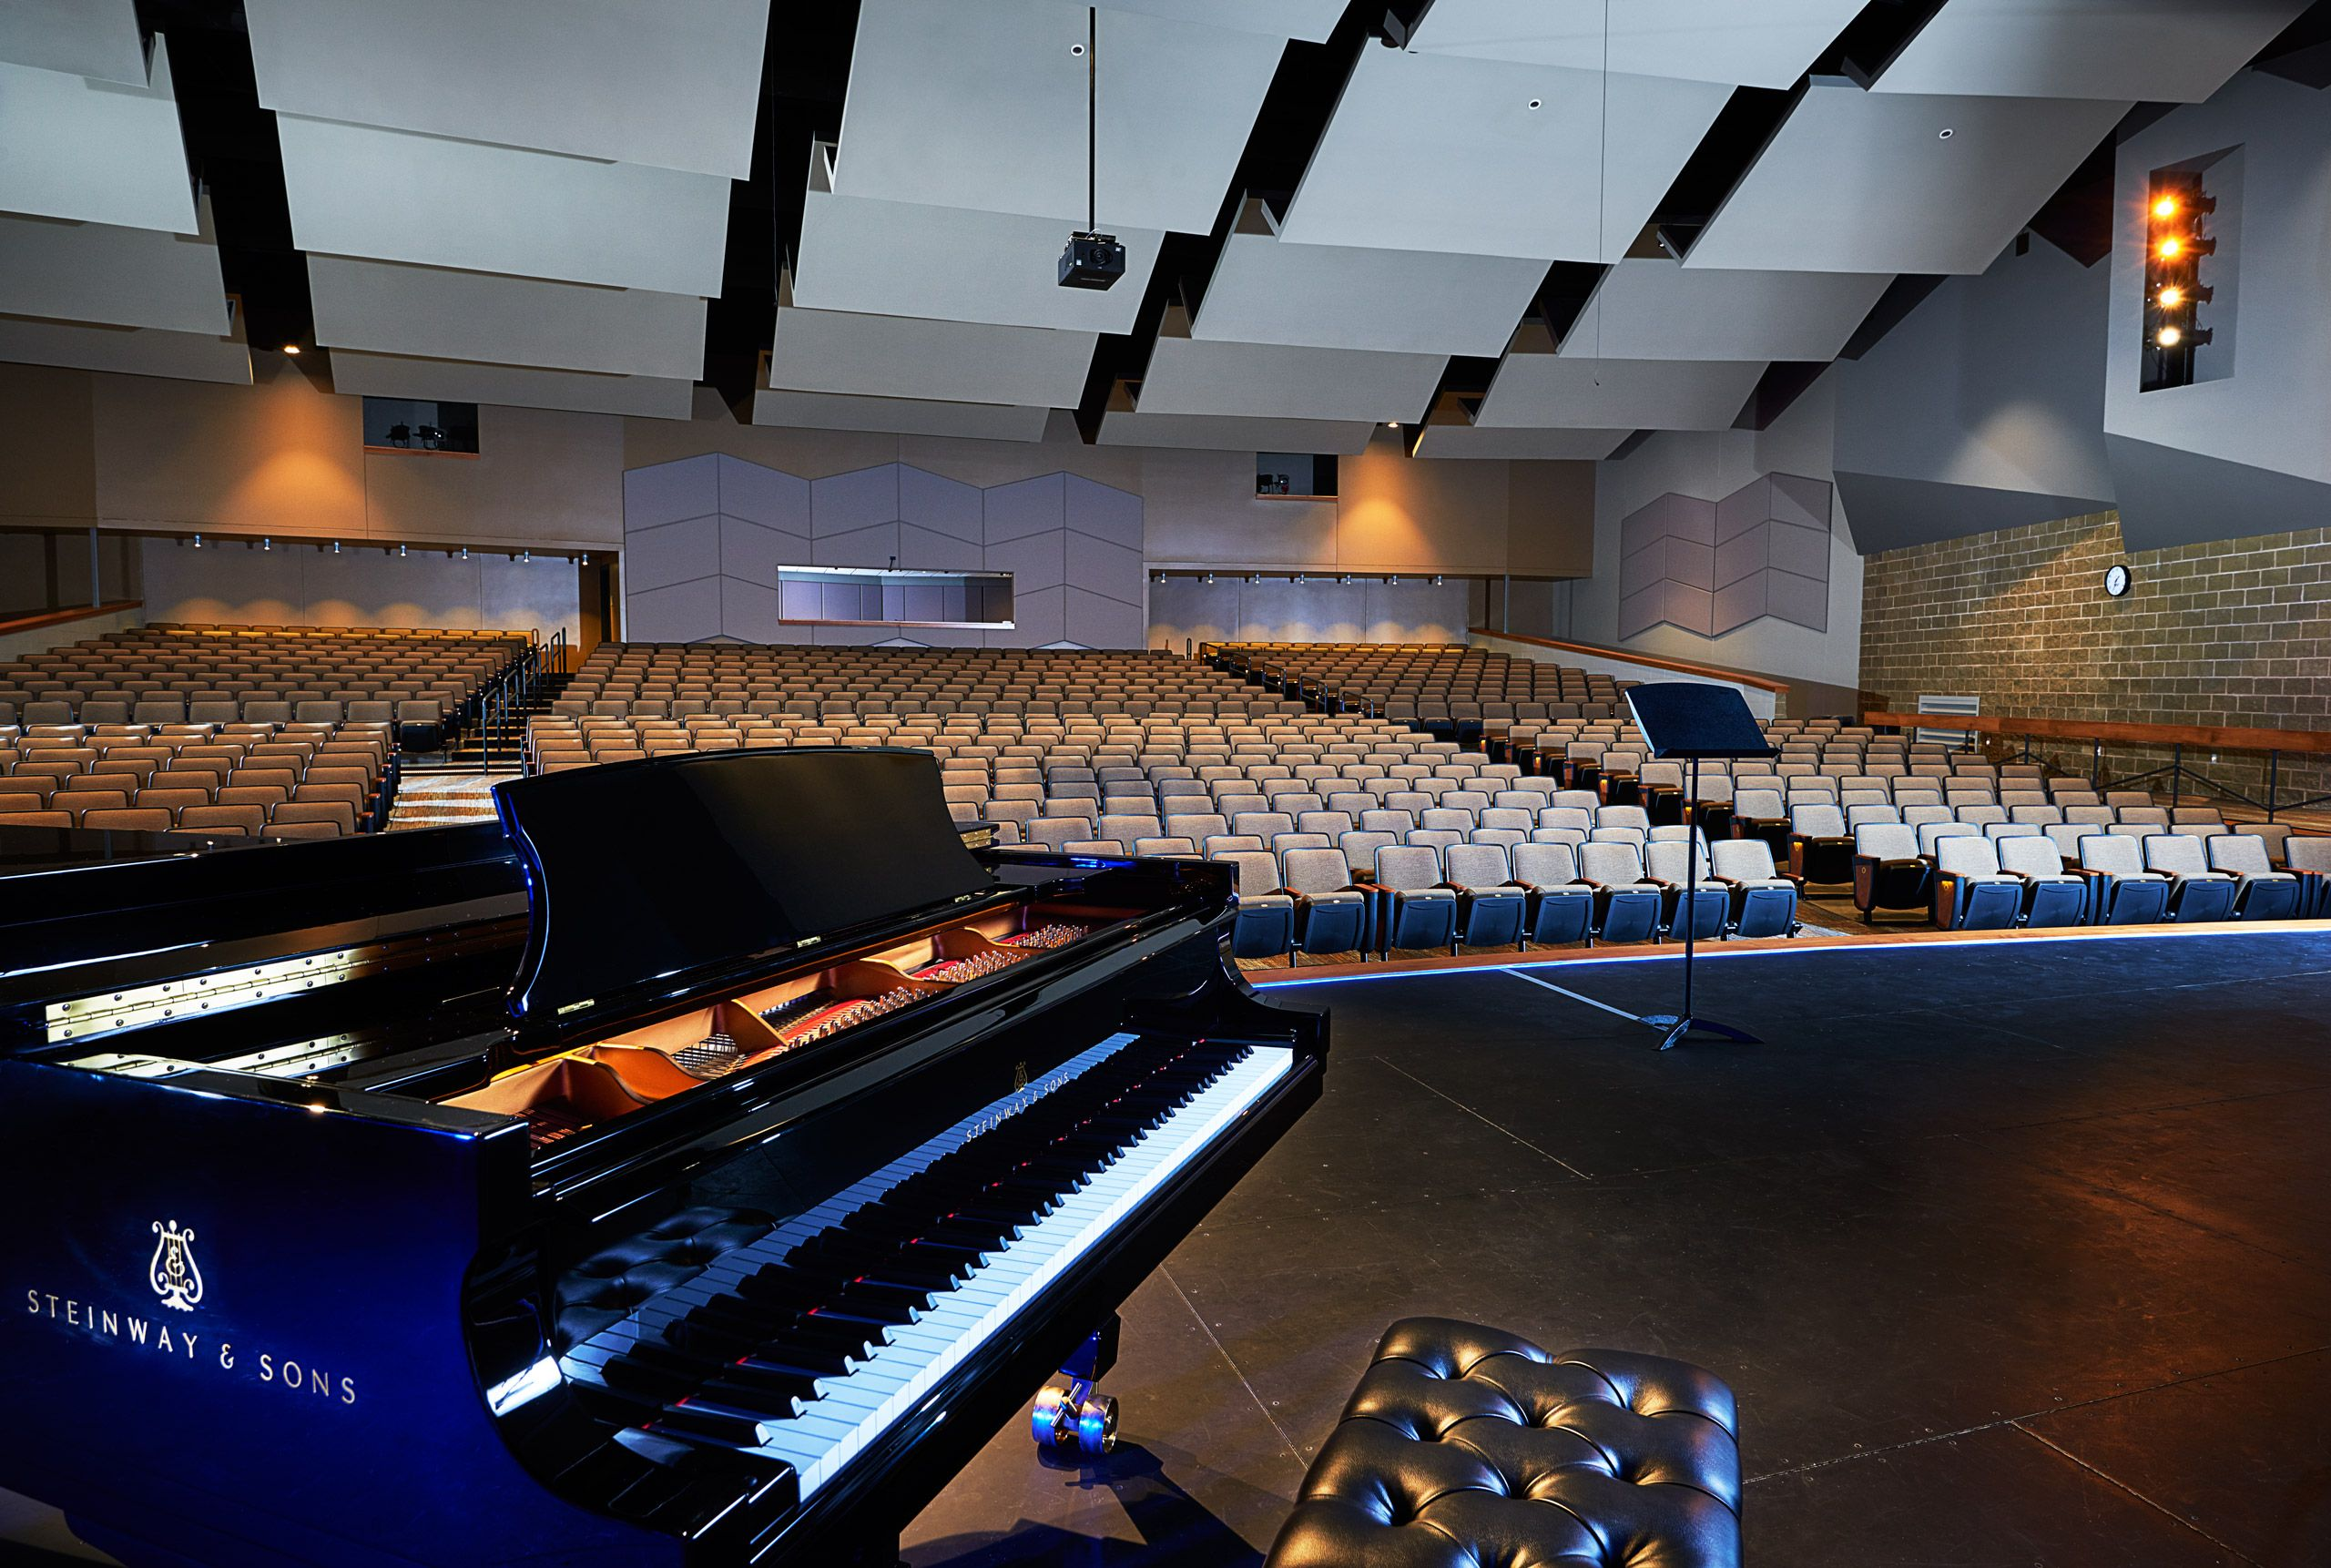 Interior architectural photograph University of Dubuque auditorium